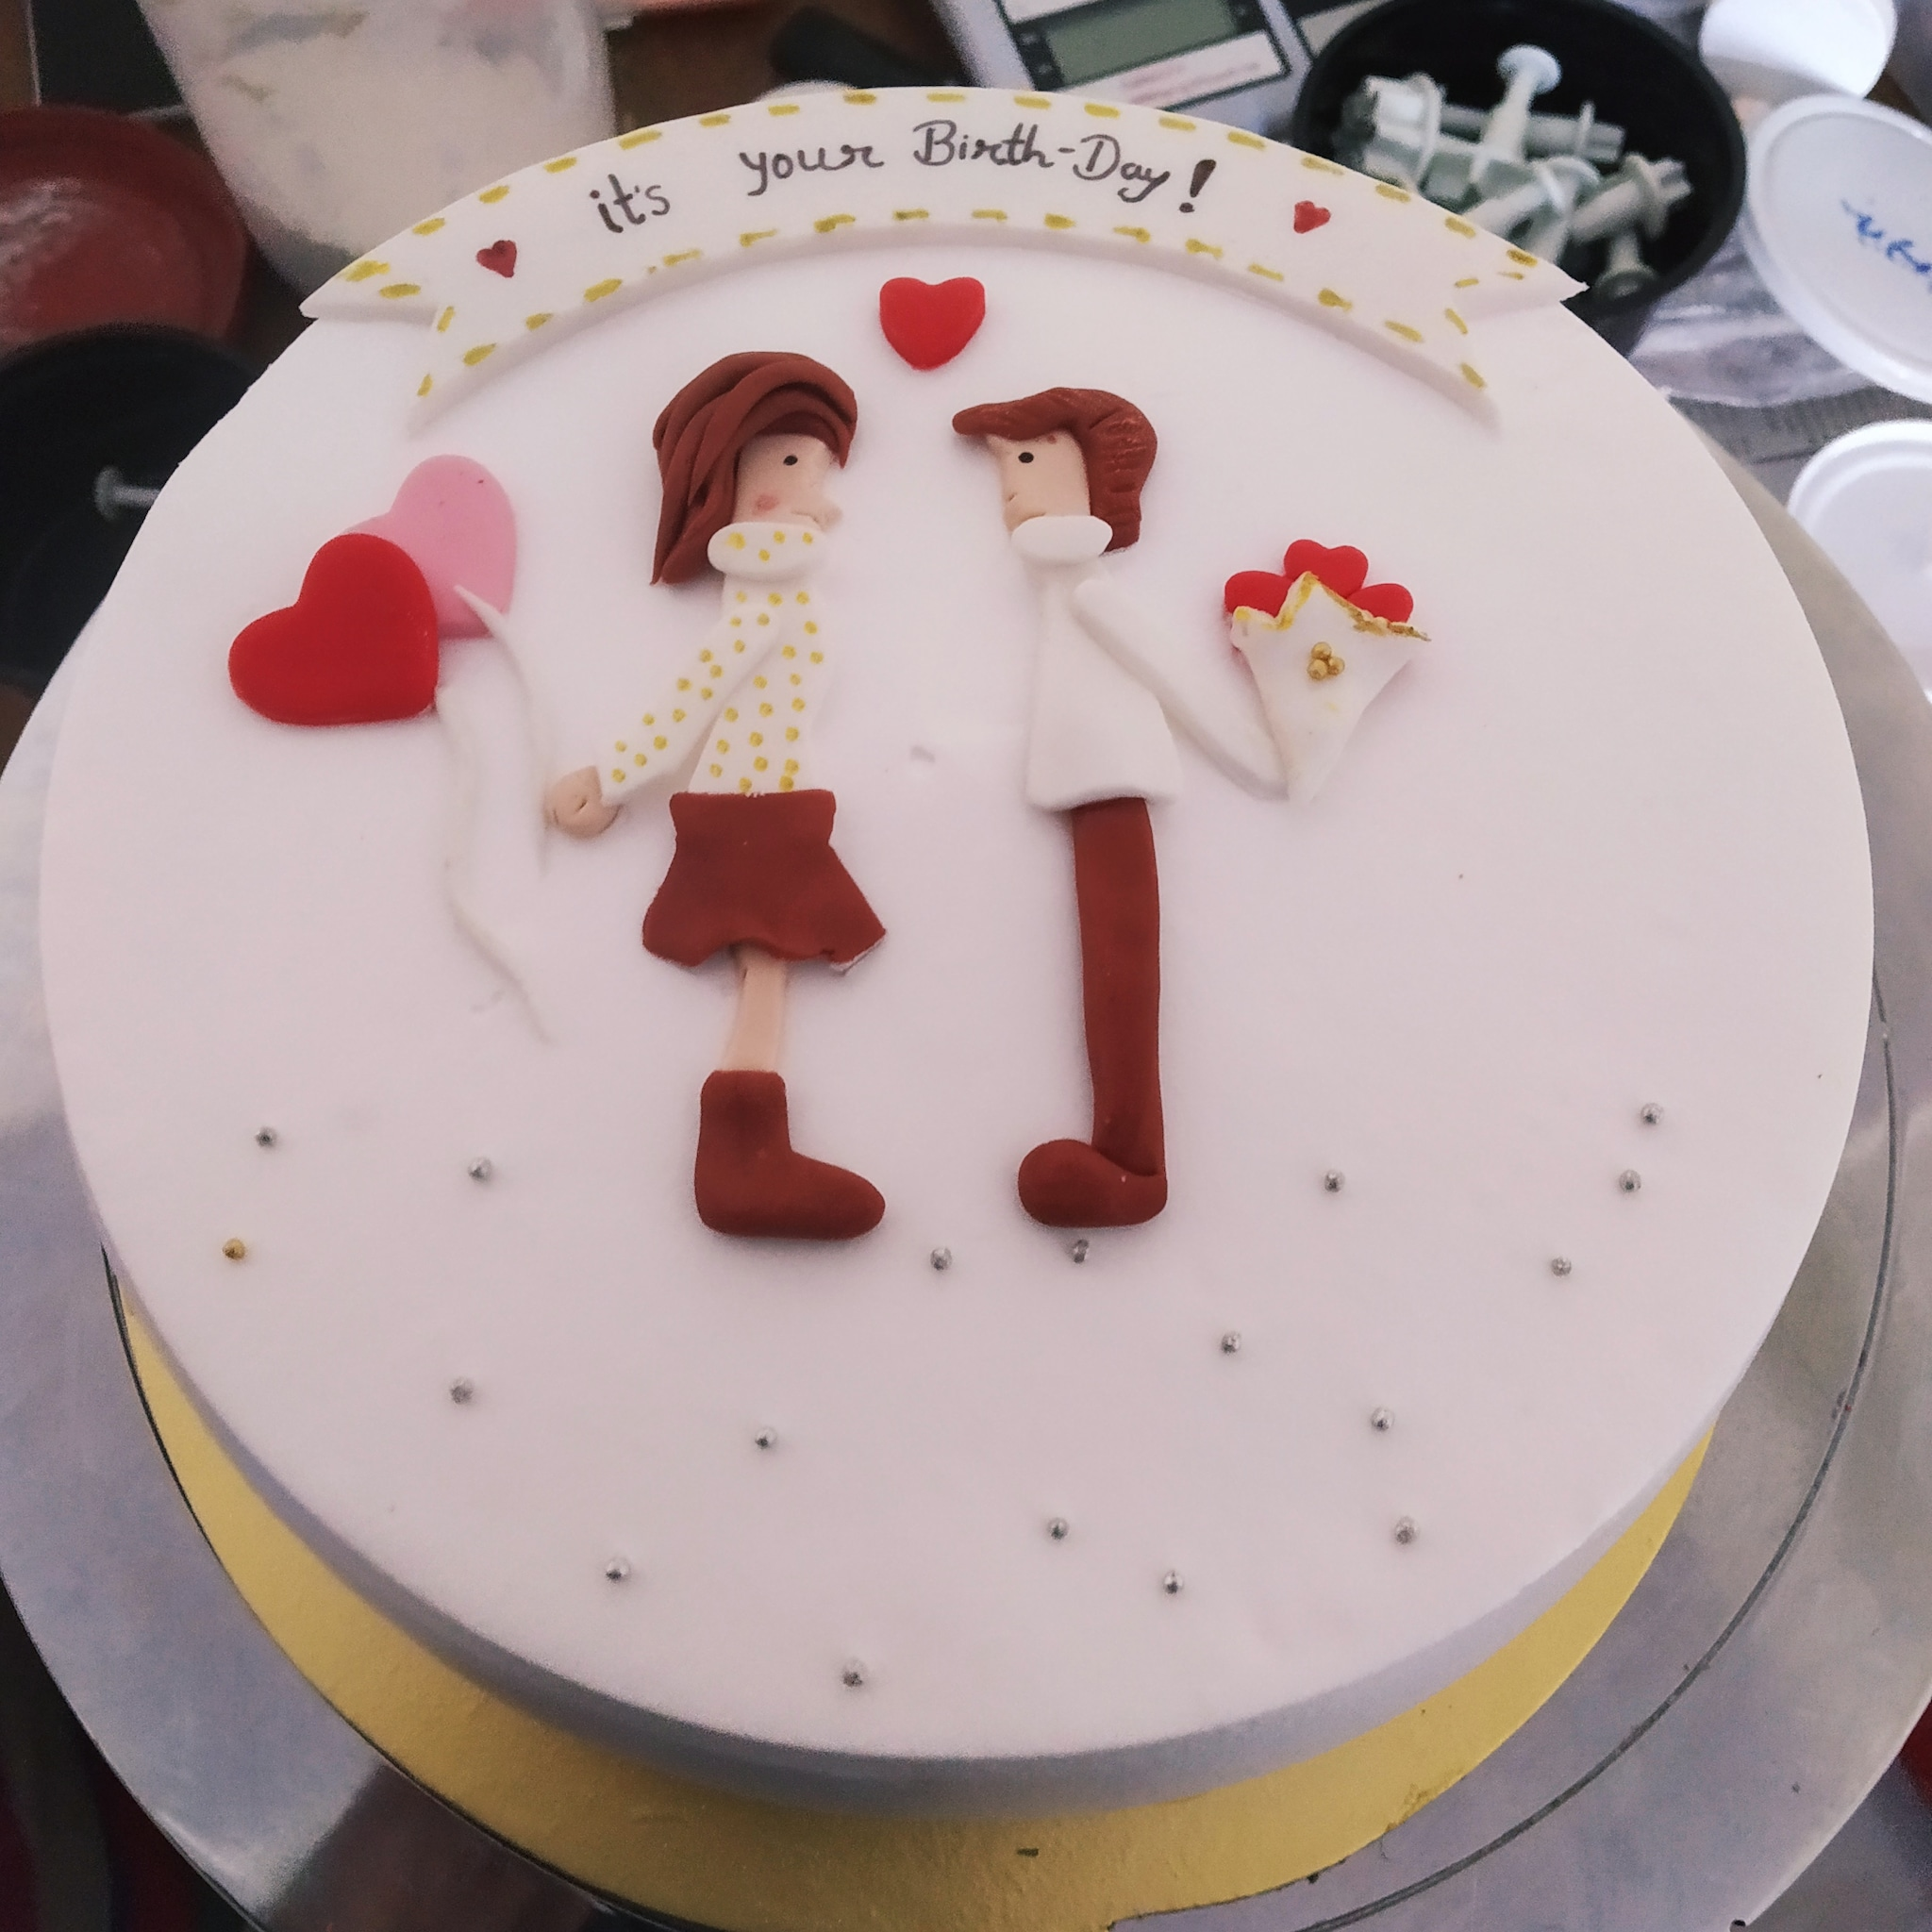 Couple Cake (1 Kg,Chocolate)